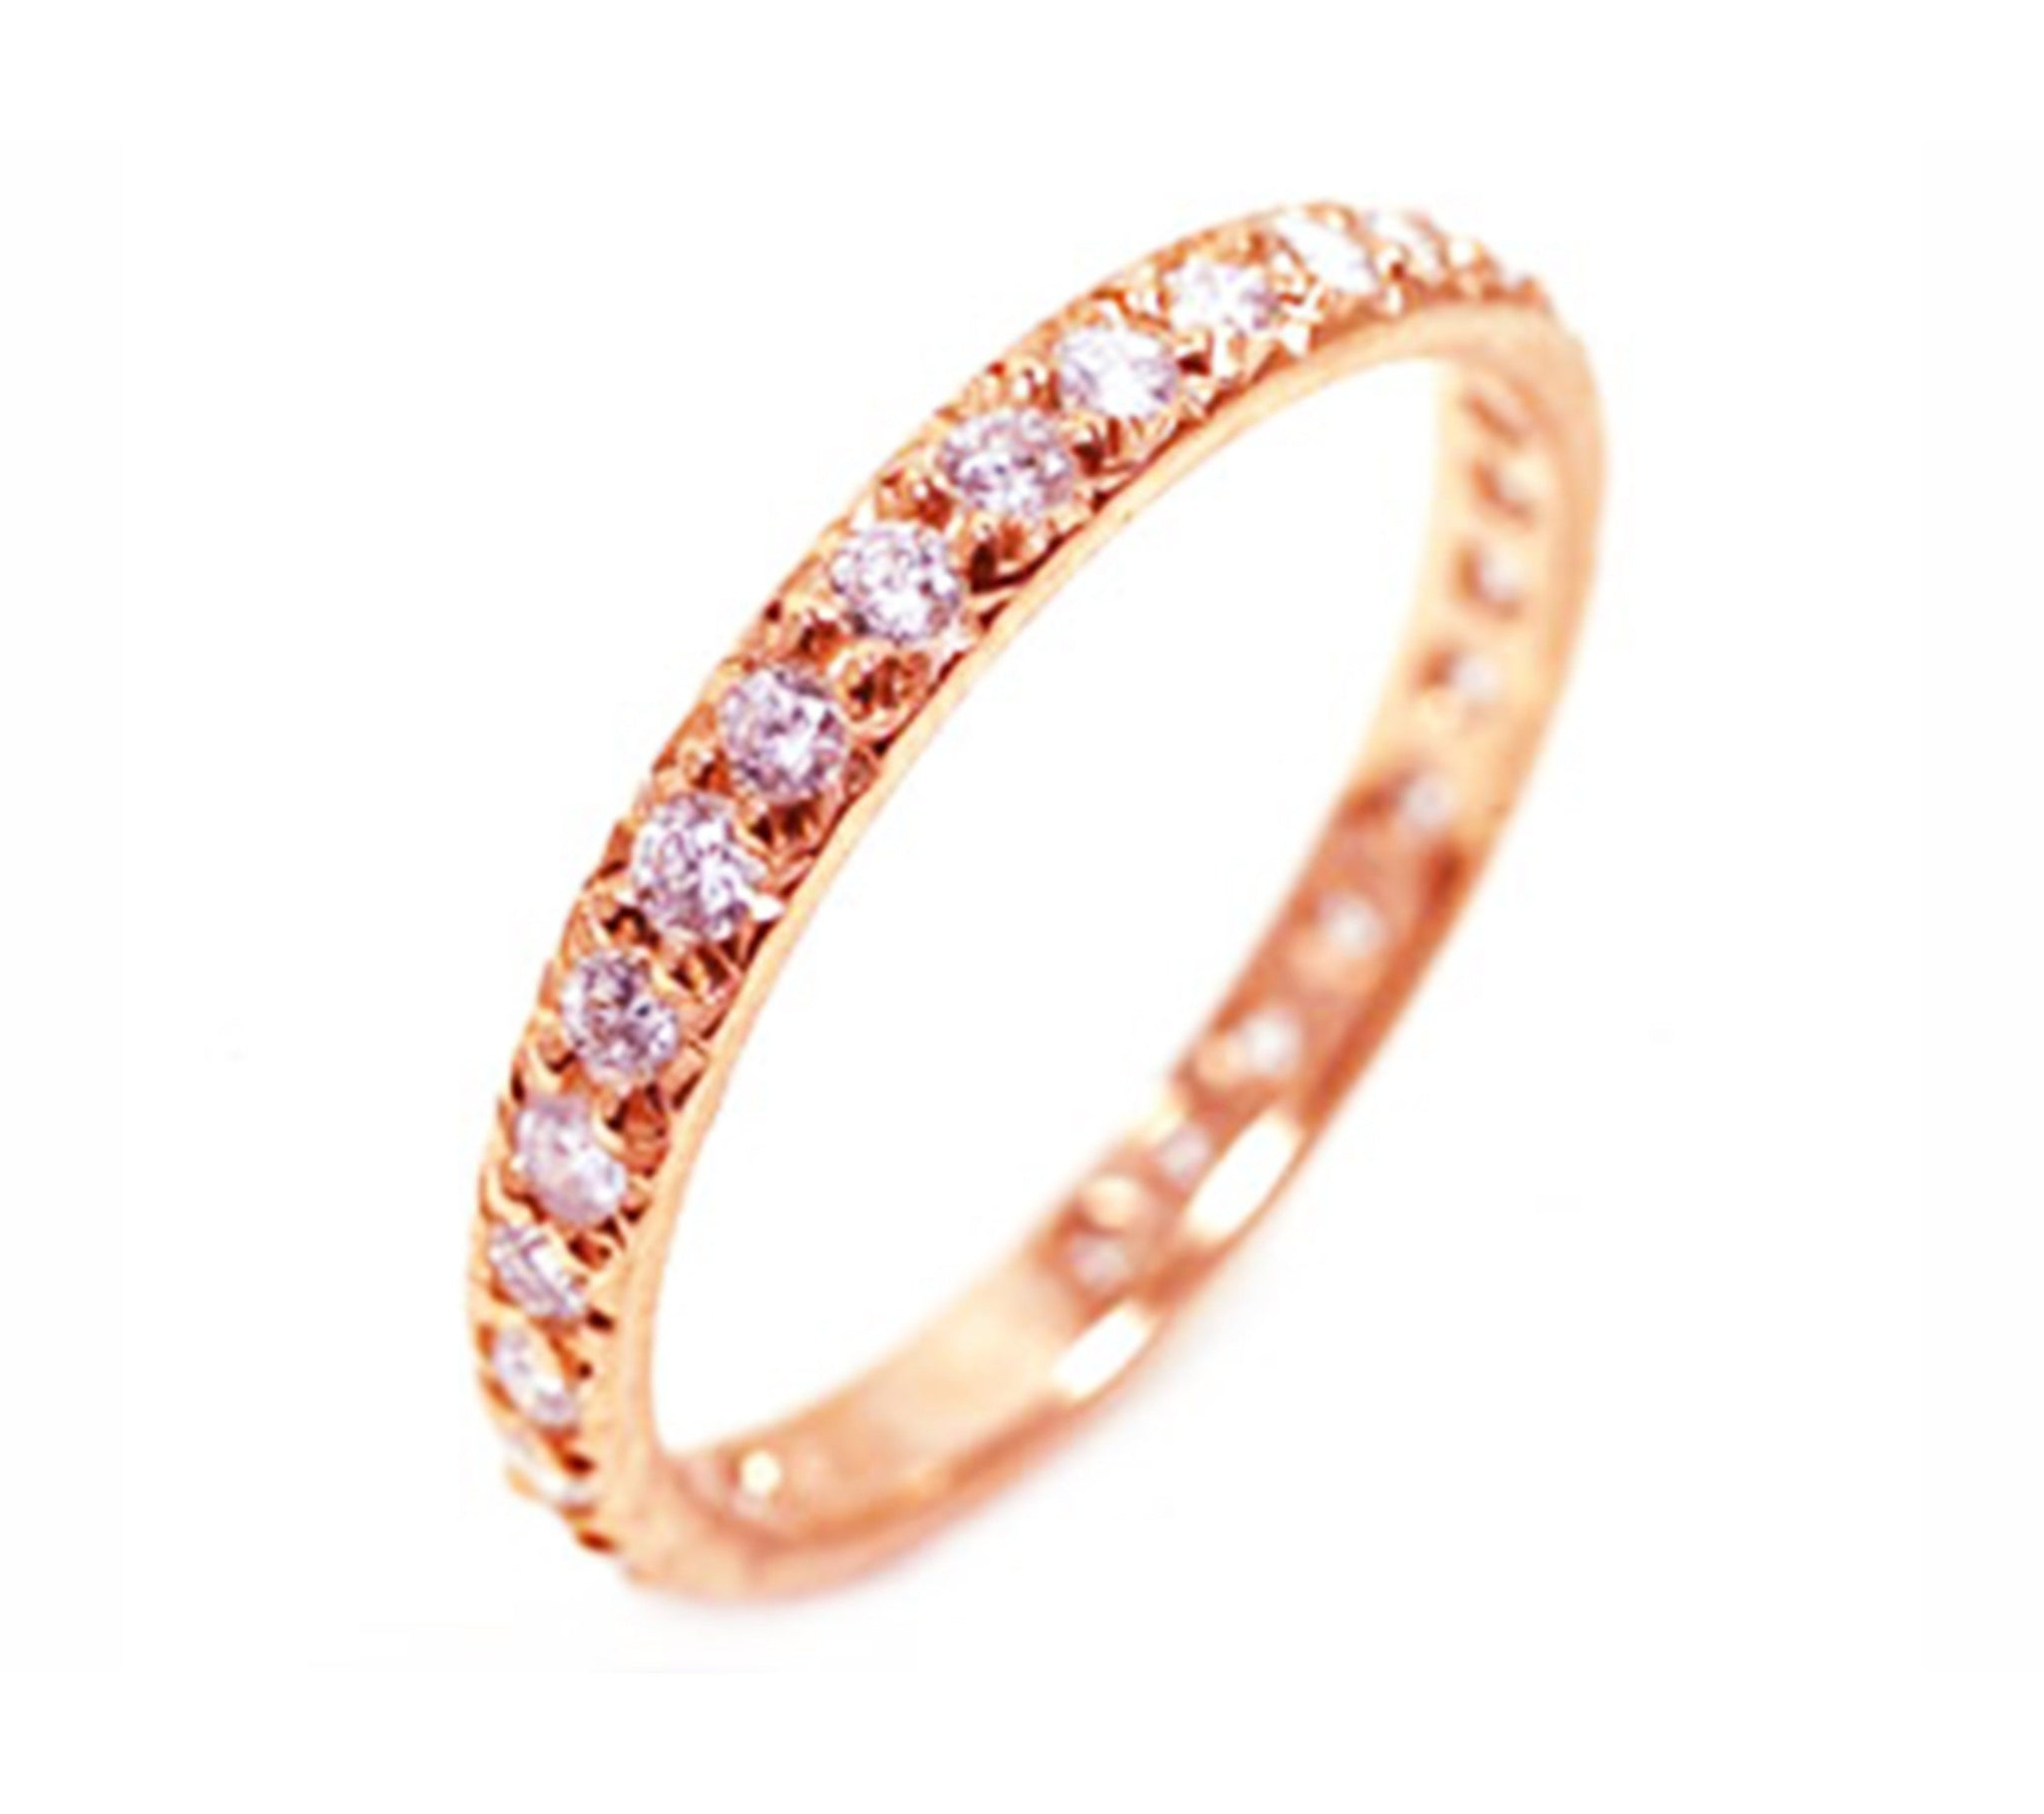 Pink Gold Eternity Wedding Band Prong Pave Set With Diamond